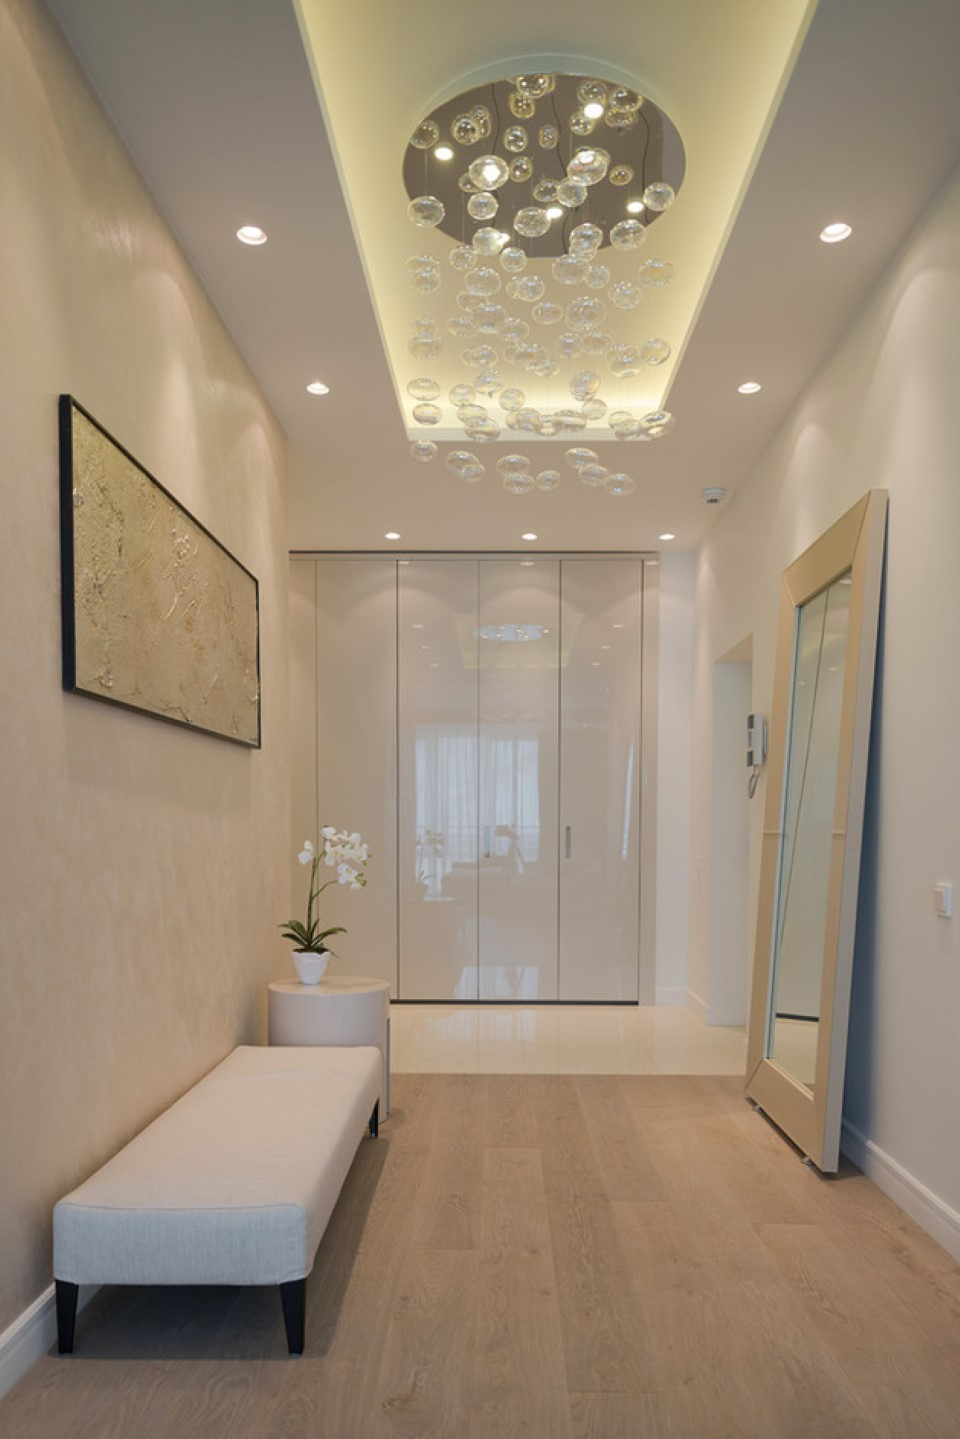 comfortable-long-upholstered-bench-plus-rectangular-floor-length-mirror-and-contemporary-hallway-lighting-ideas-and-small-flower-decor